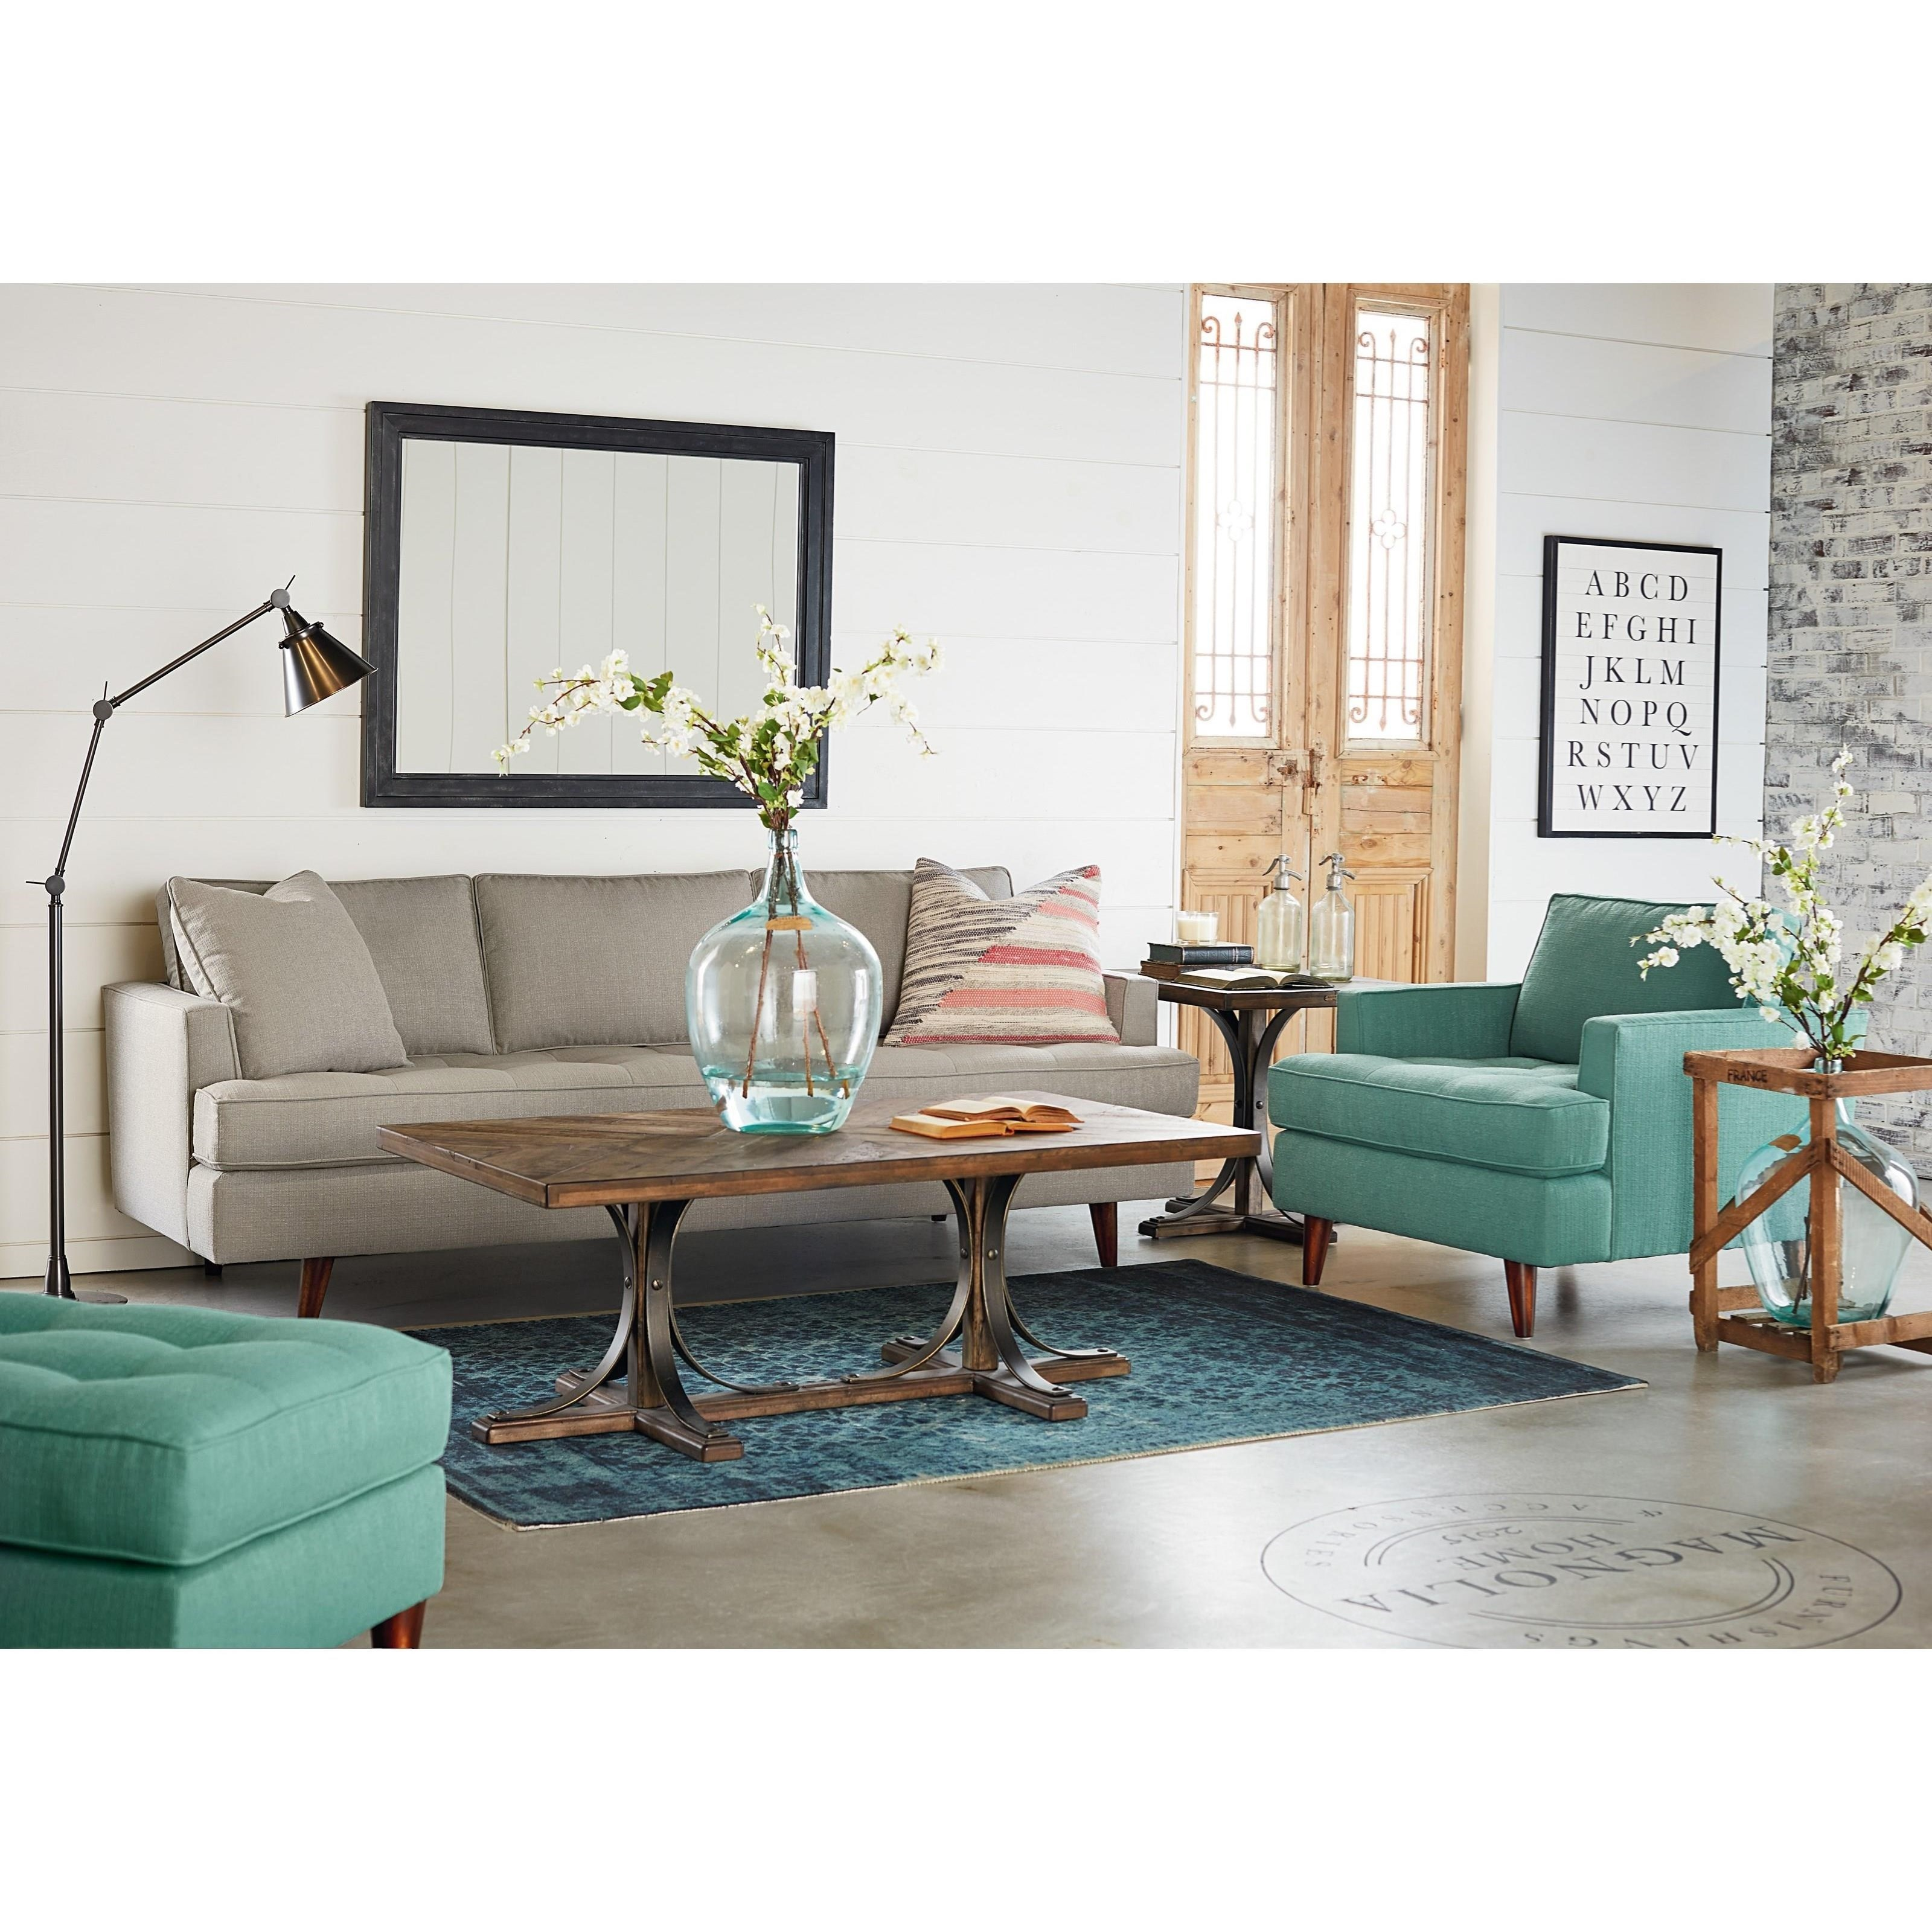 Chair By Magnolia Home By Joanna Gaines Wolf And Gardiner Wolf Furniture